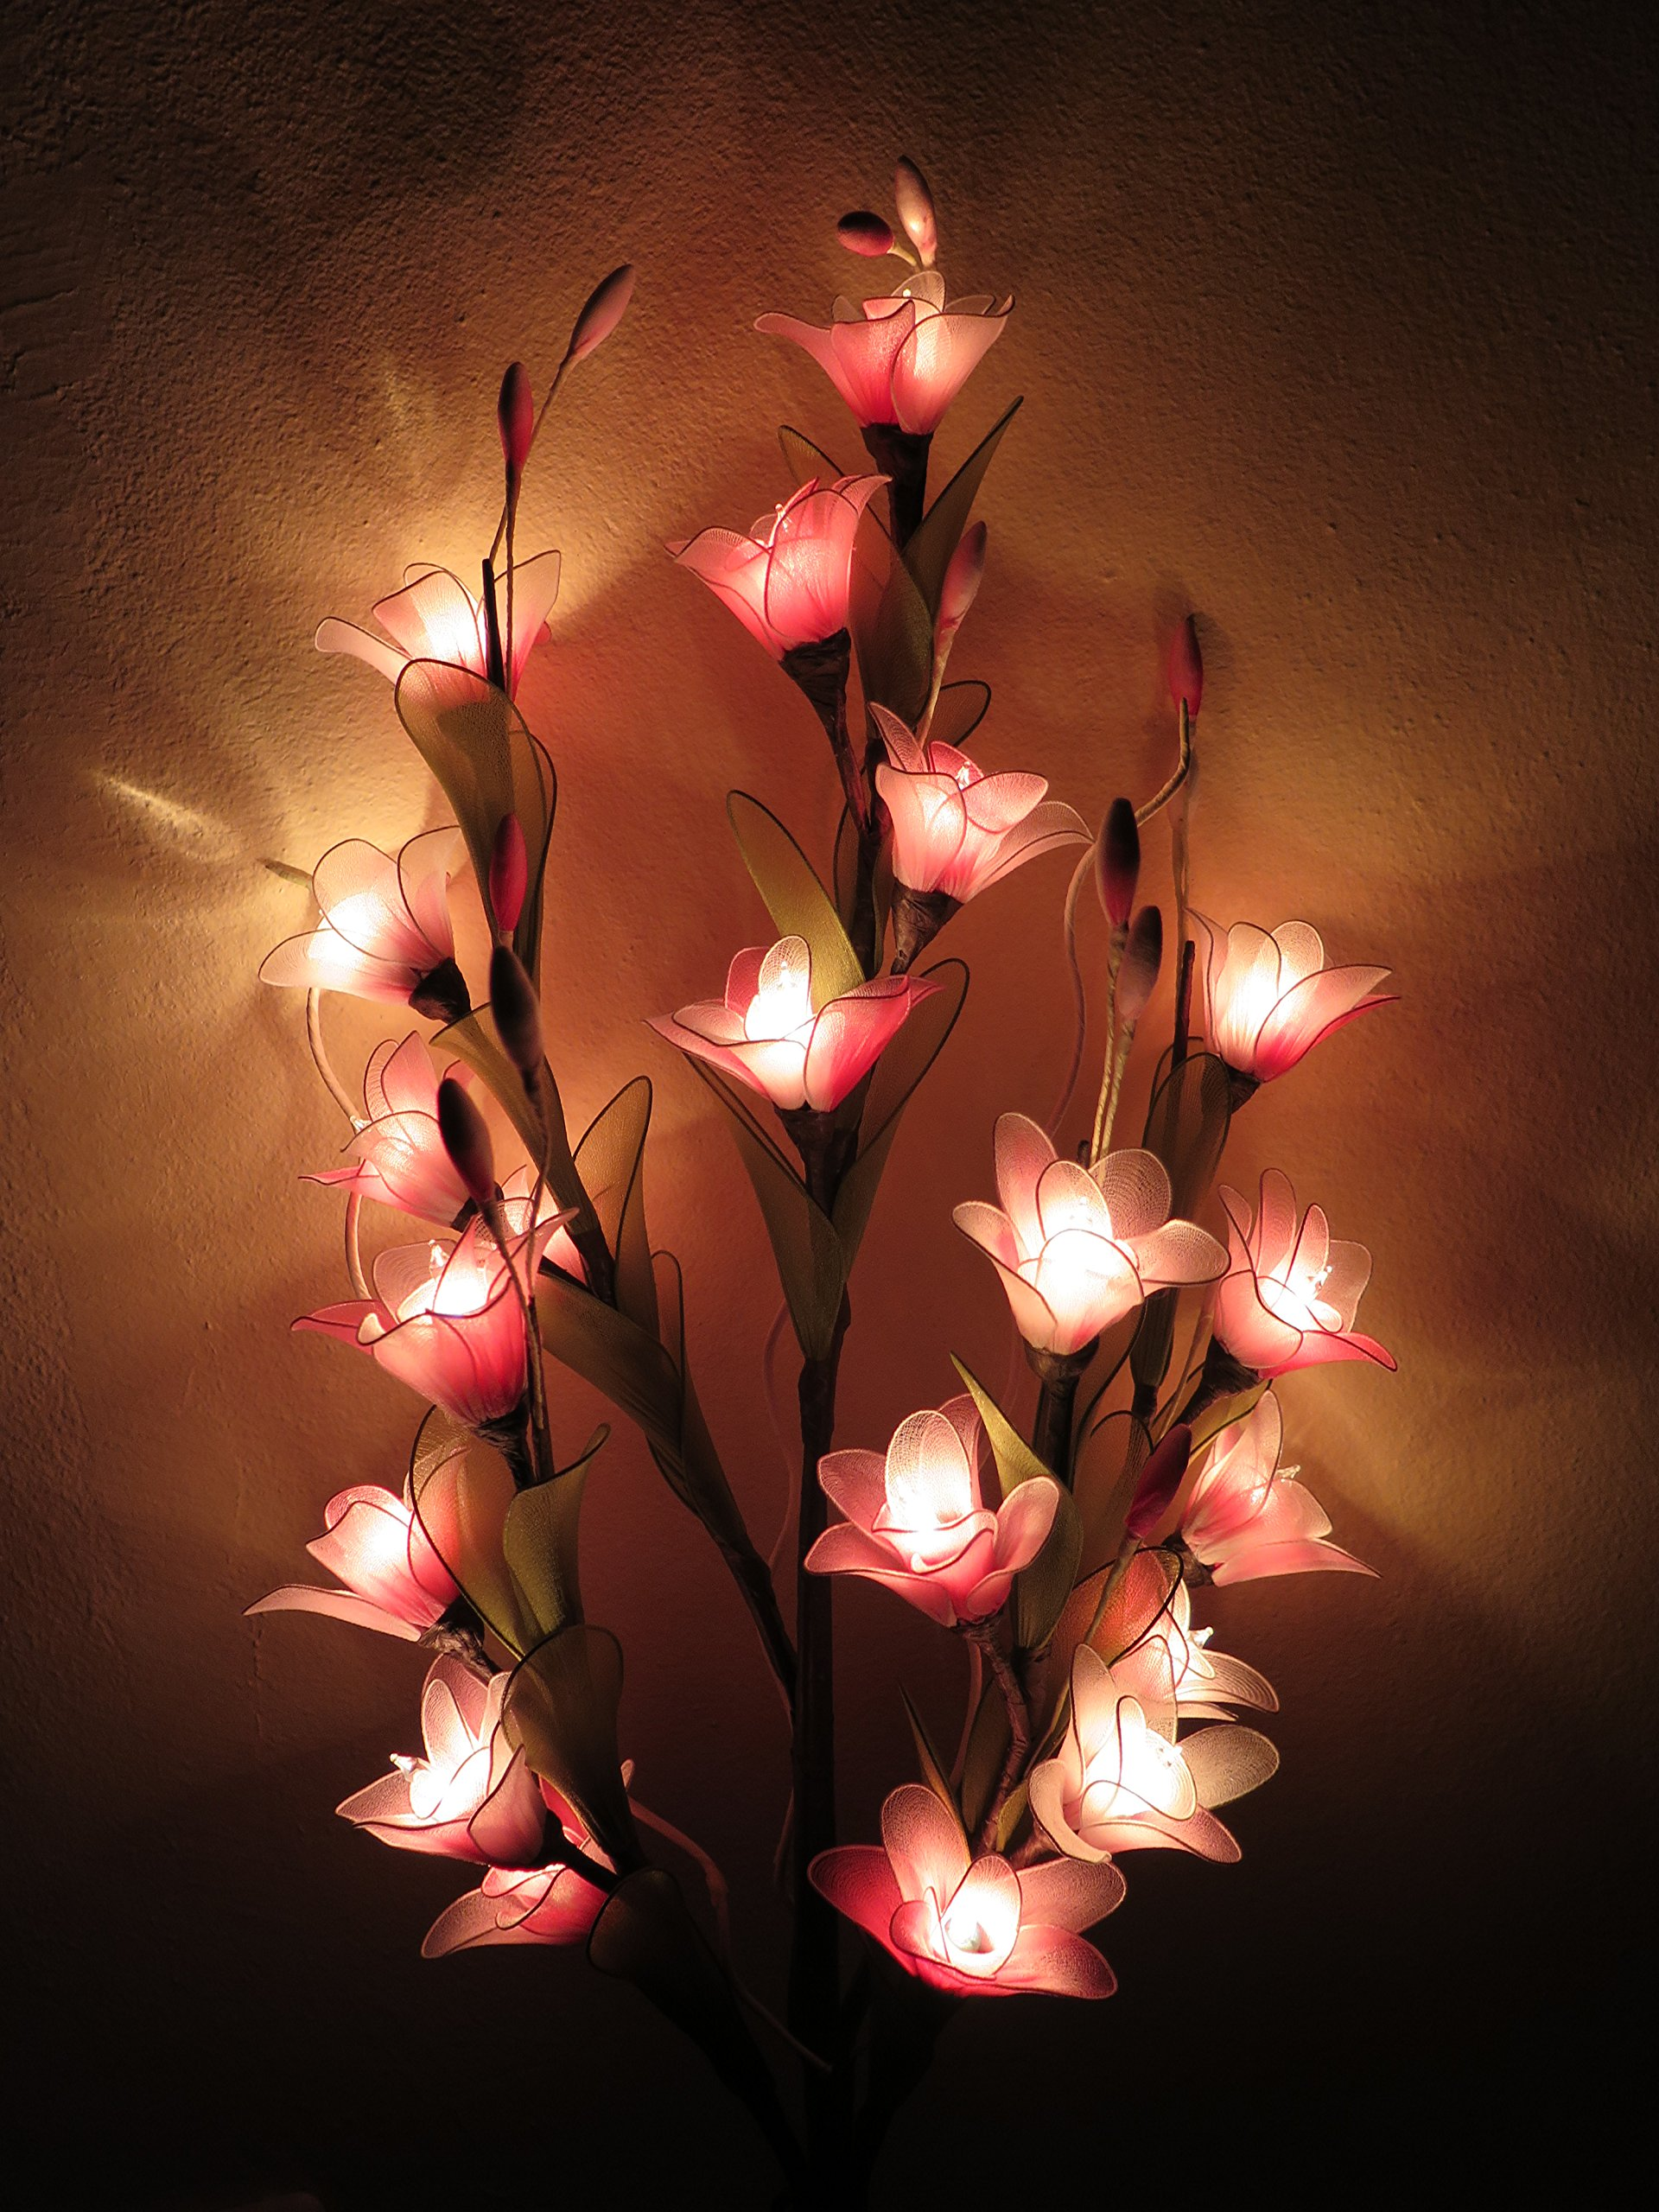 silk flower arrangements thai orchid artificial flowers lamps, vase/floor/table lamps, night light, wedding lighting, home decor, gift, made by nylon, paper, fabric, 20 light bulbs, 33 inch